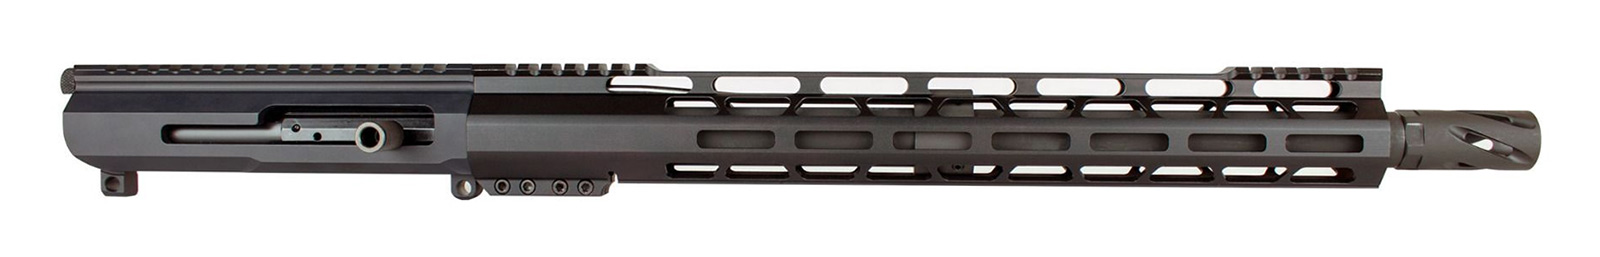 ar15-complete-upper-assembly-16-inch-50-cal-120-m-lok-160014